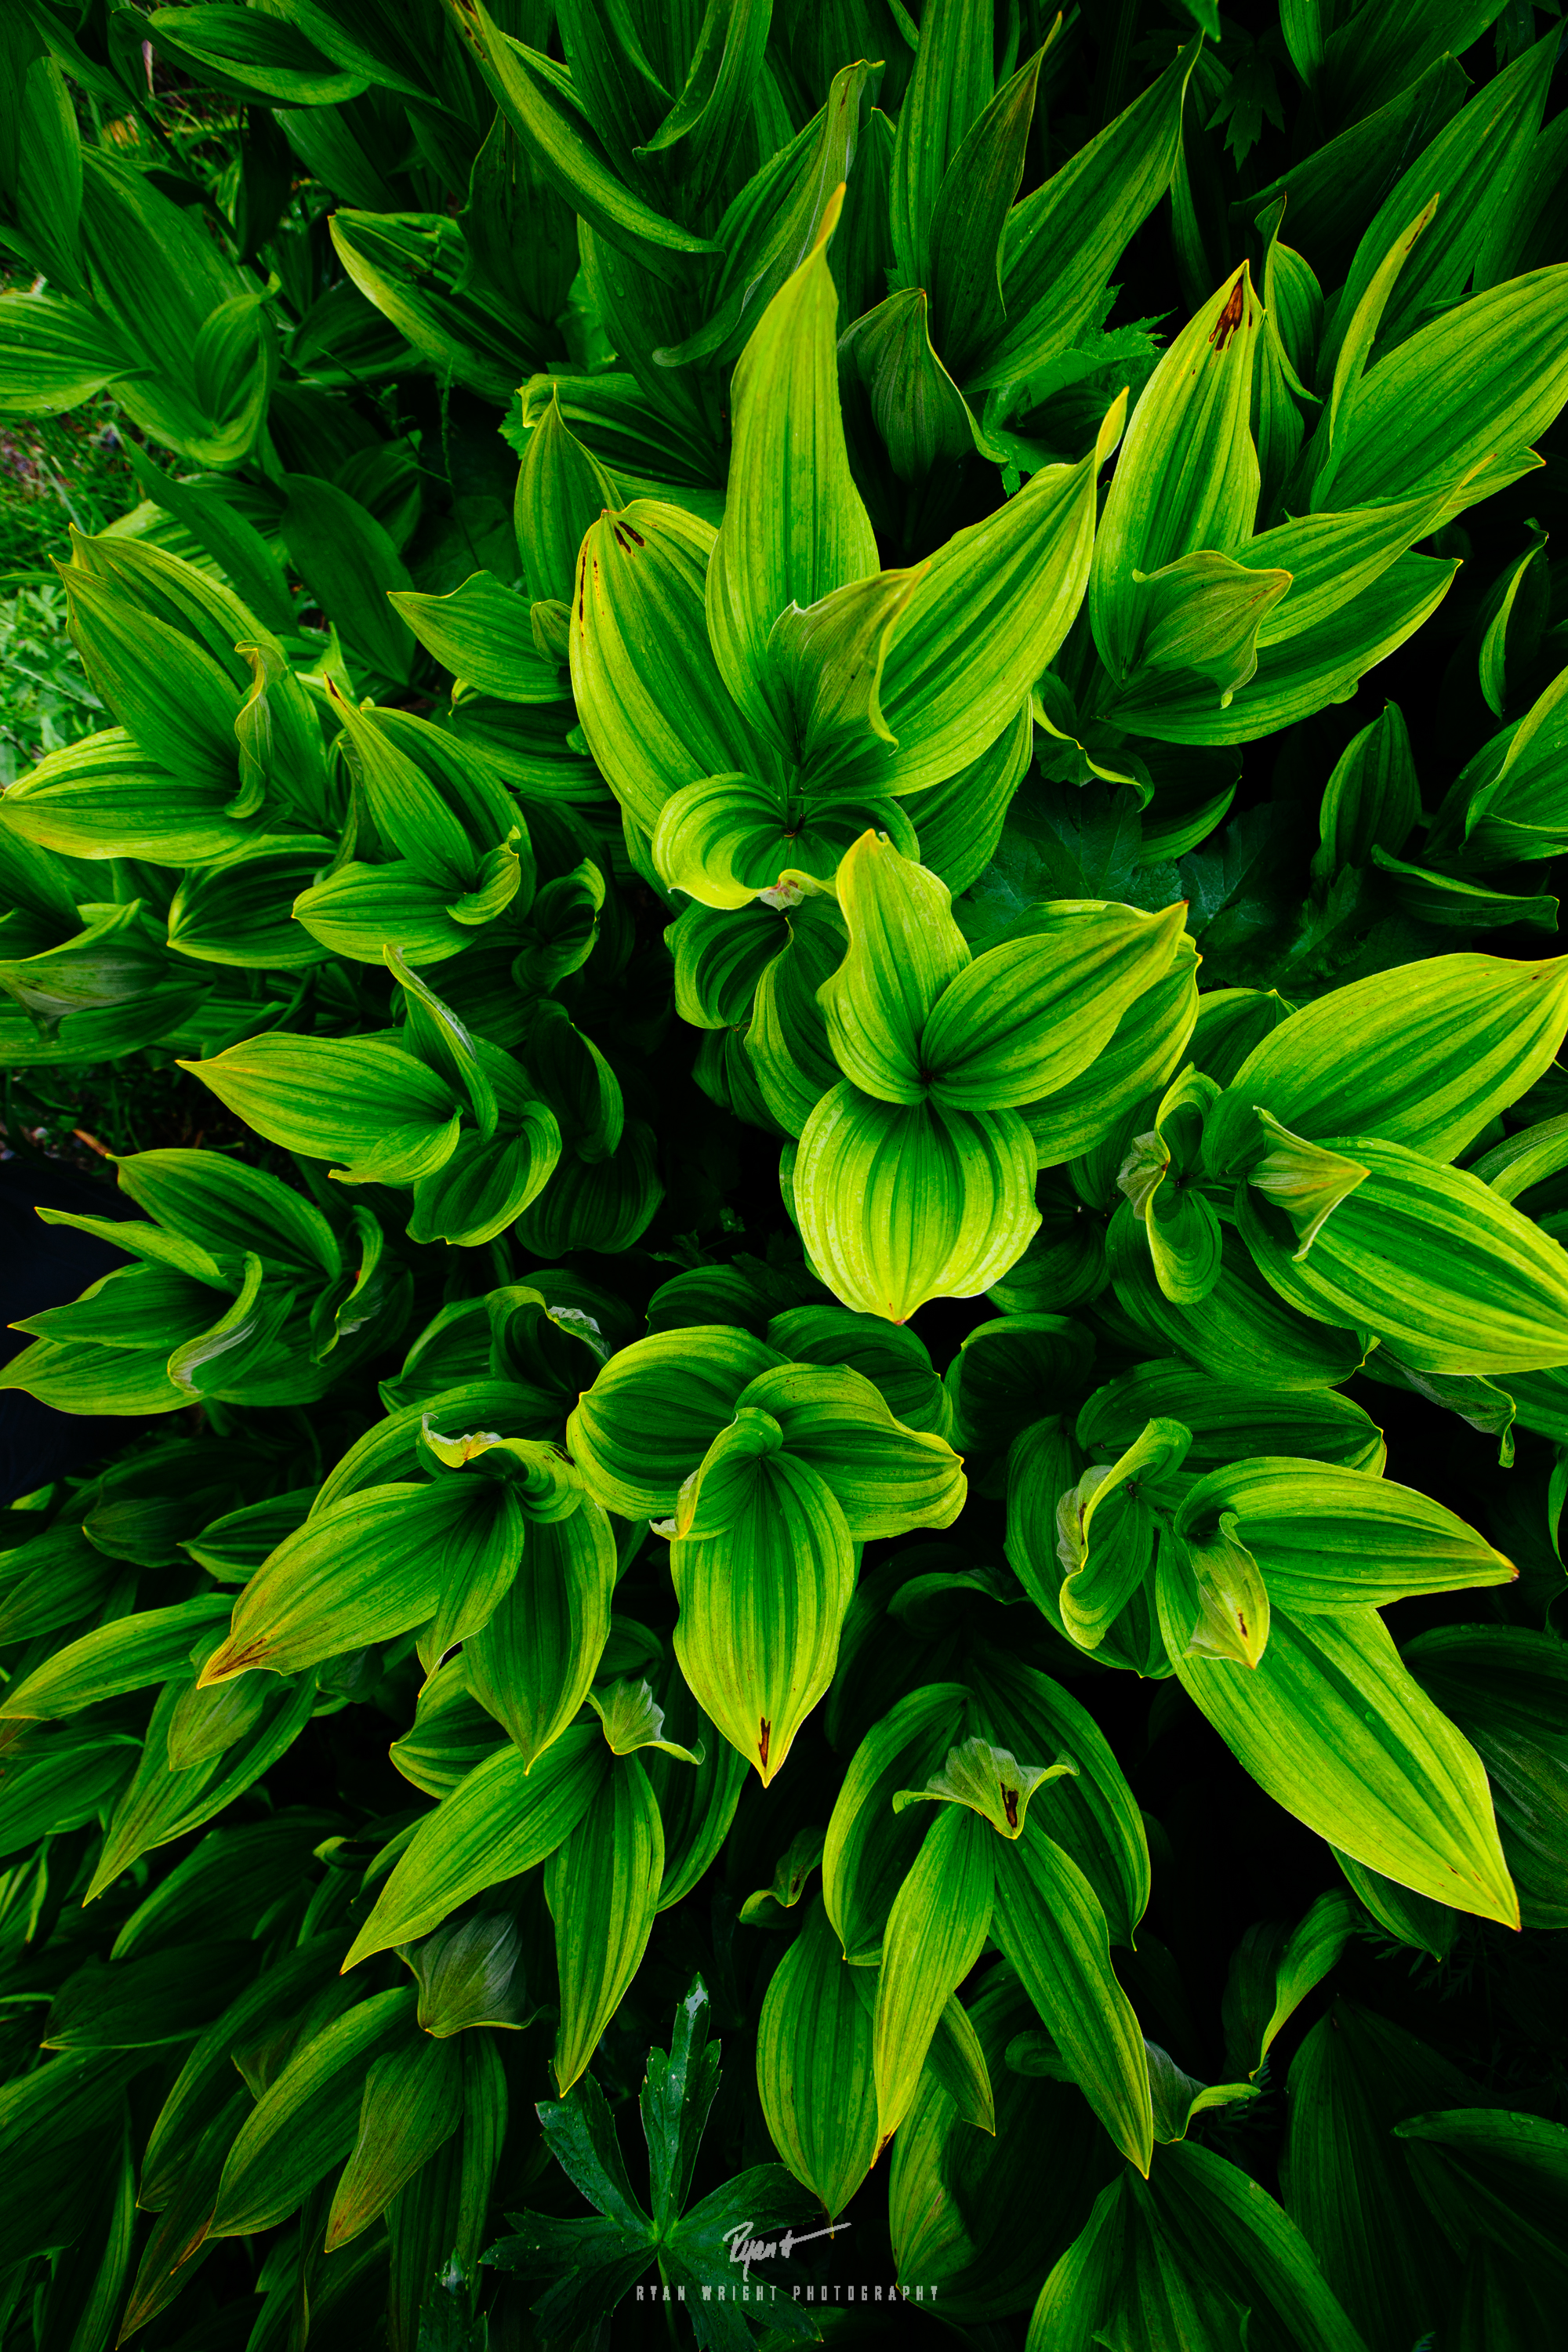 crested-butte-corn-lilly.jpg